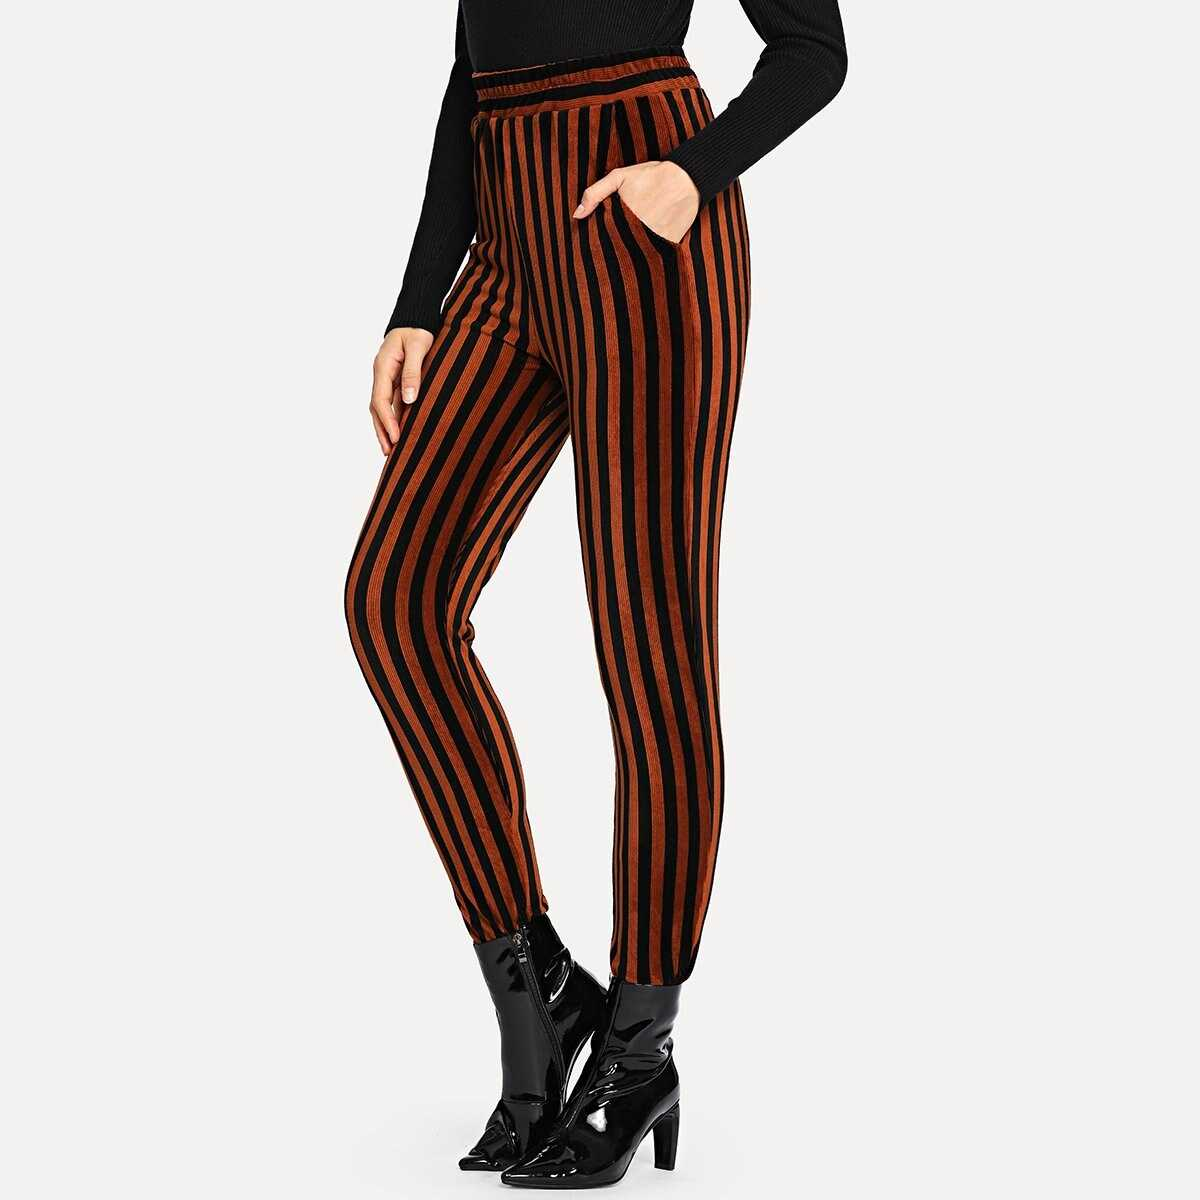 Striped Print Pants - Shein - GOOFASH